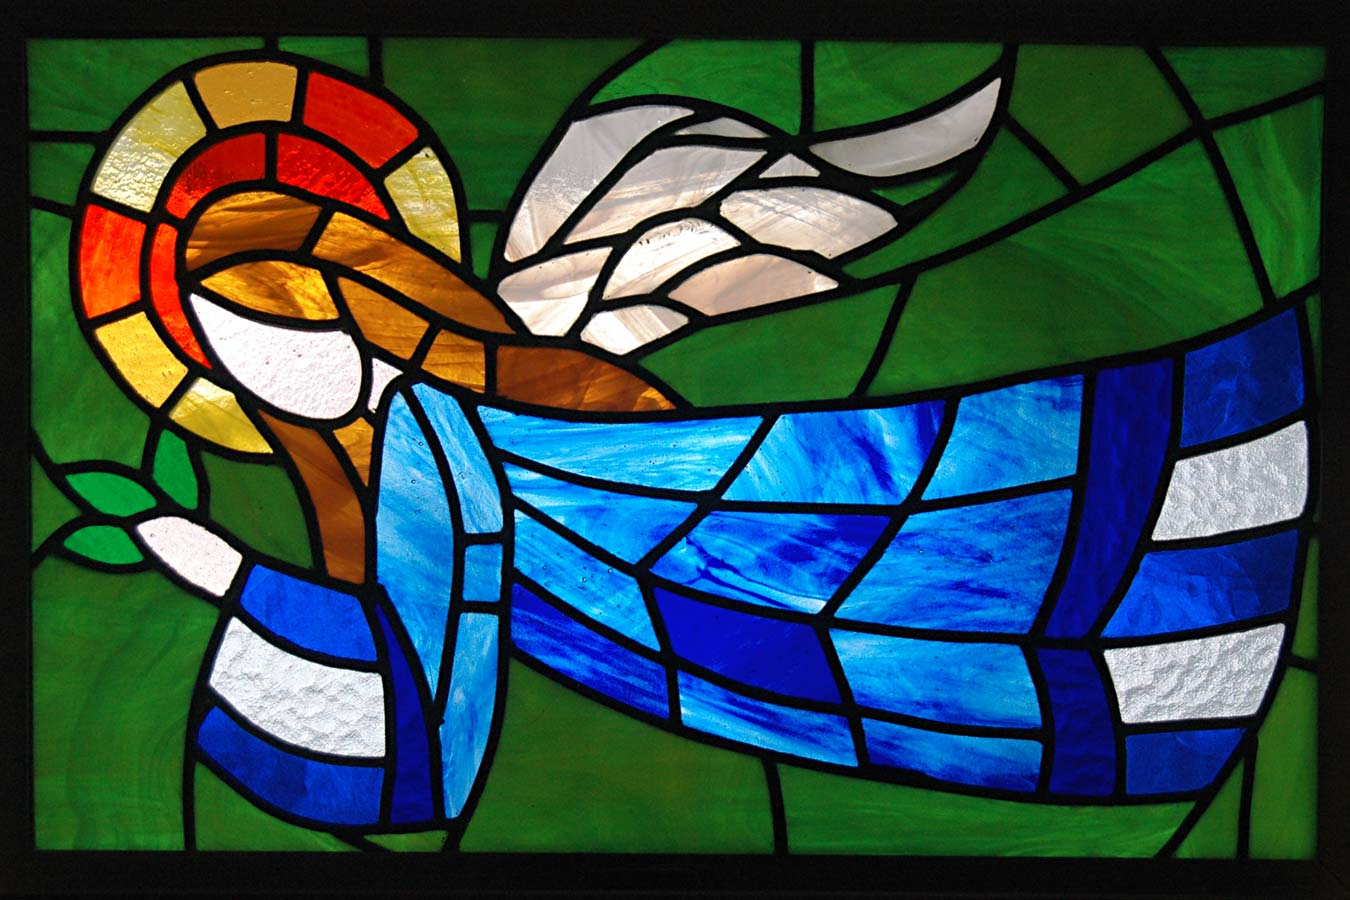 Angel stained glass window by Marion Grisa